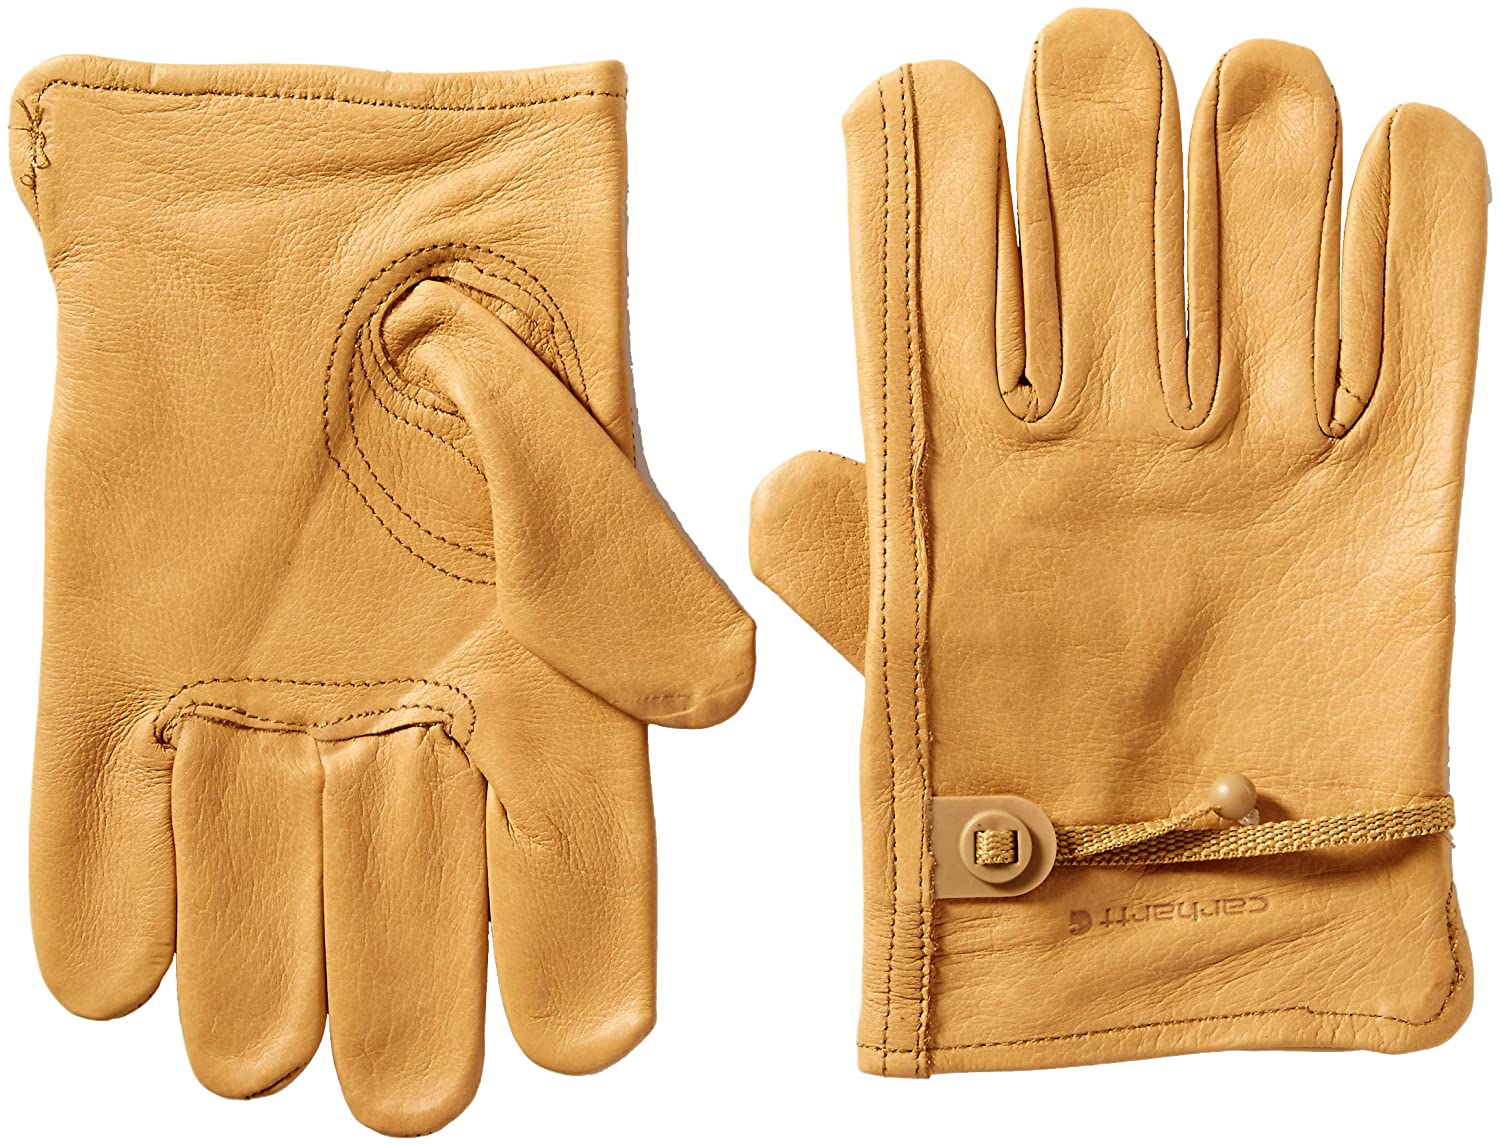 Carhartt Men's Full Grain Leather Driver Work Glove, Brown, Small A514